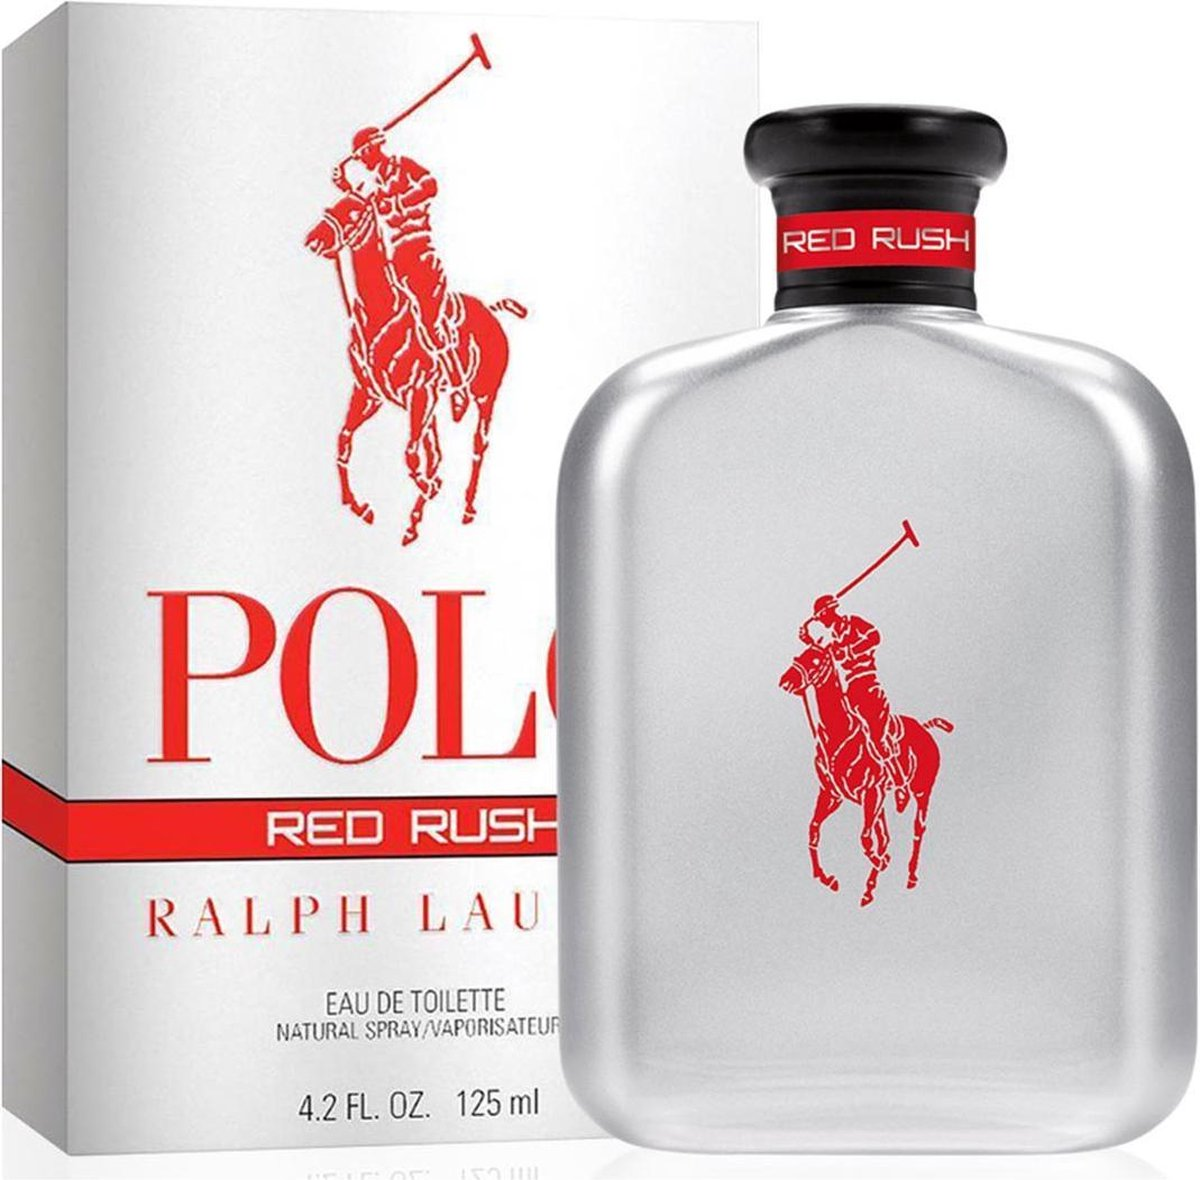 RALPH LAUREN POLO RED RUSH EAU DE TOILETTE 125ML VAPORIZADOR